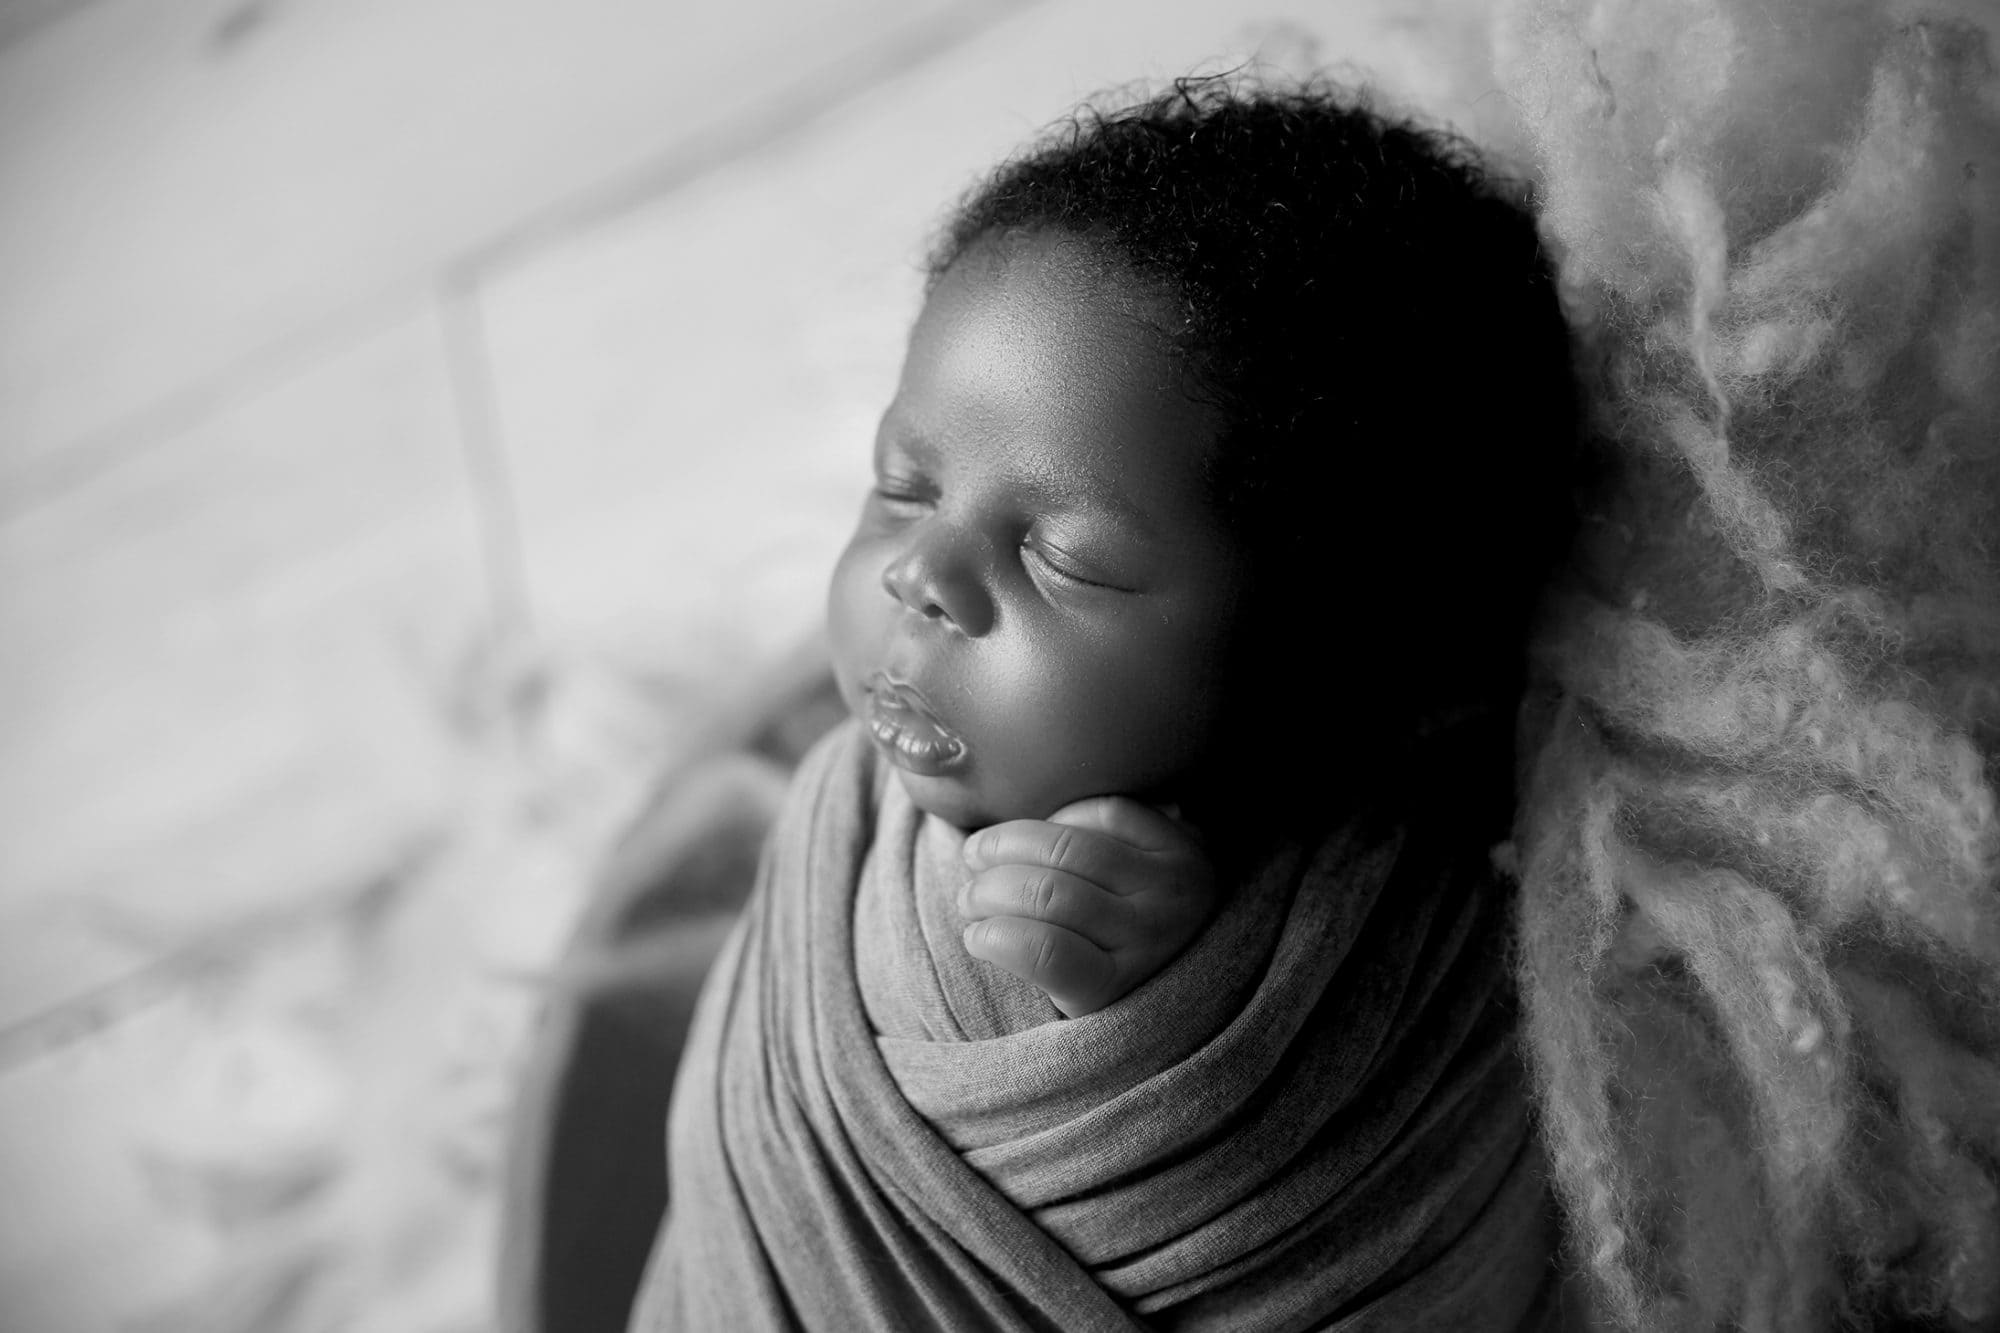 a close up black and white picture of a nigerian newborn baby boy asleep from the side